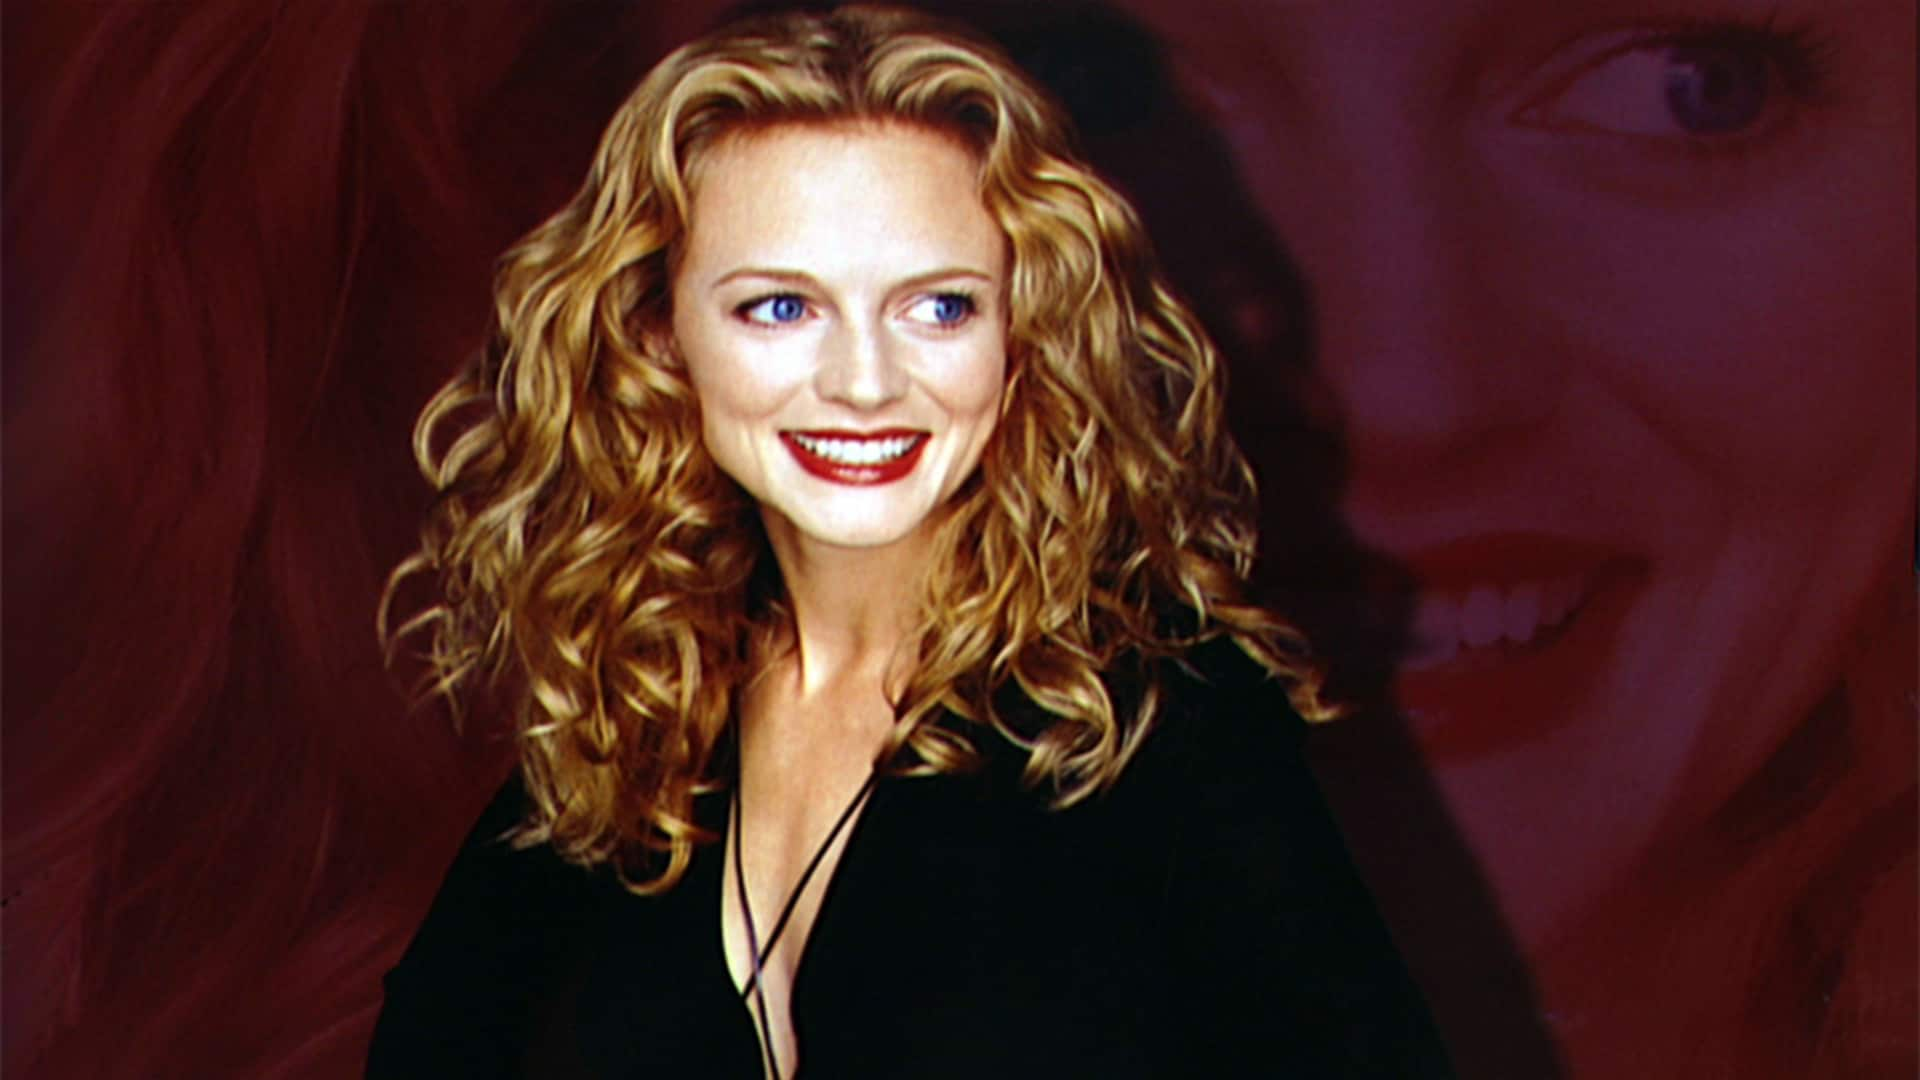 Heather Graham: October 16, 1999